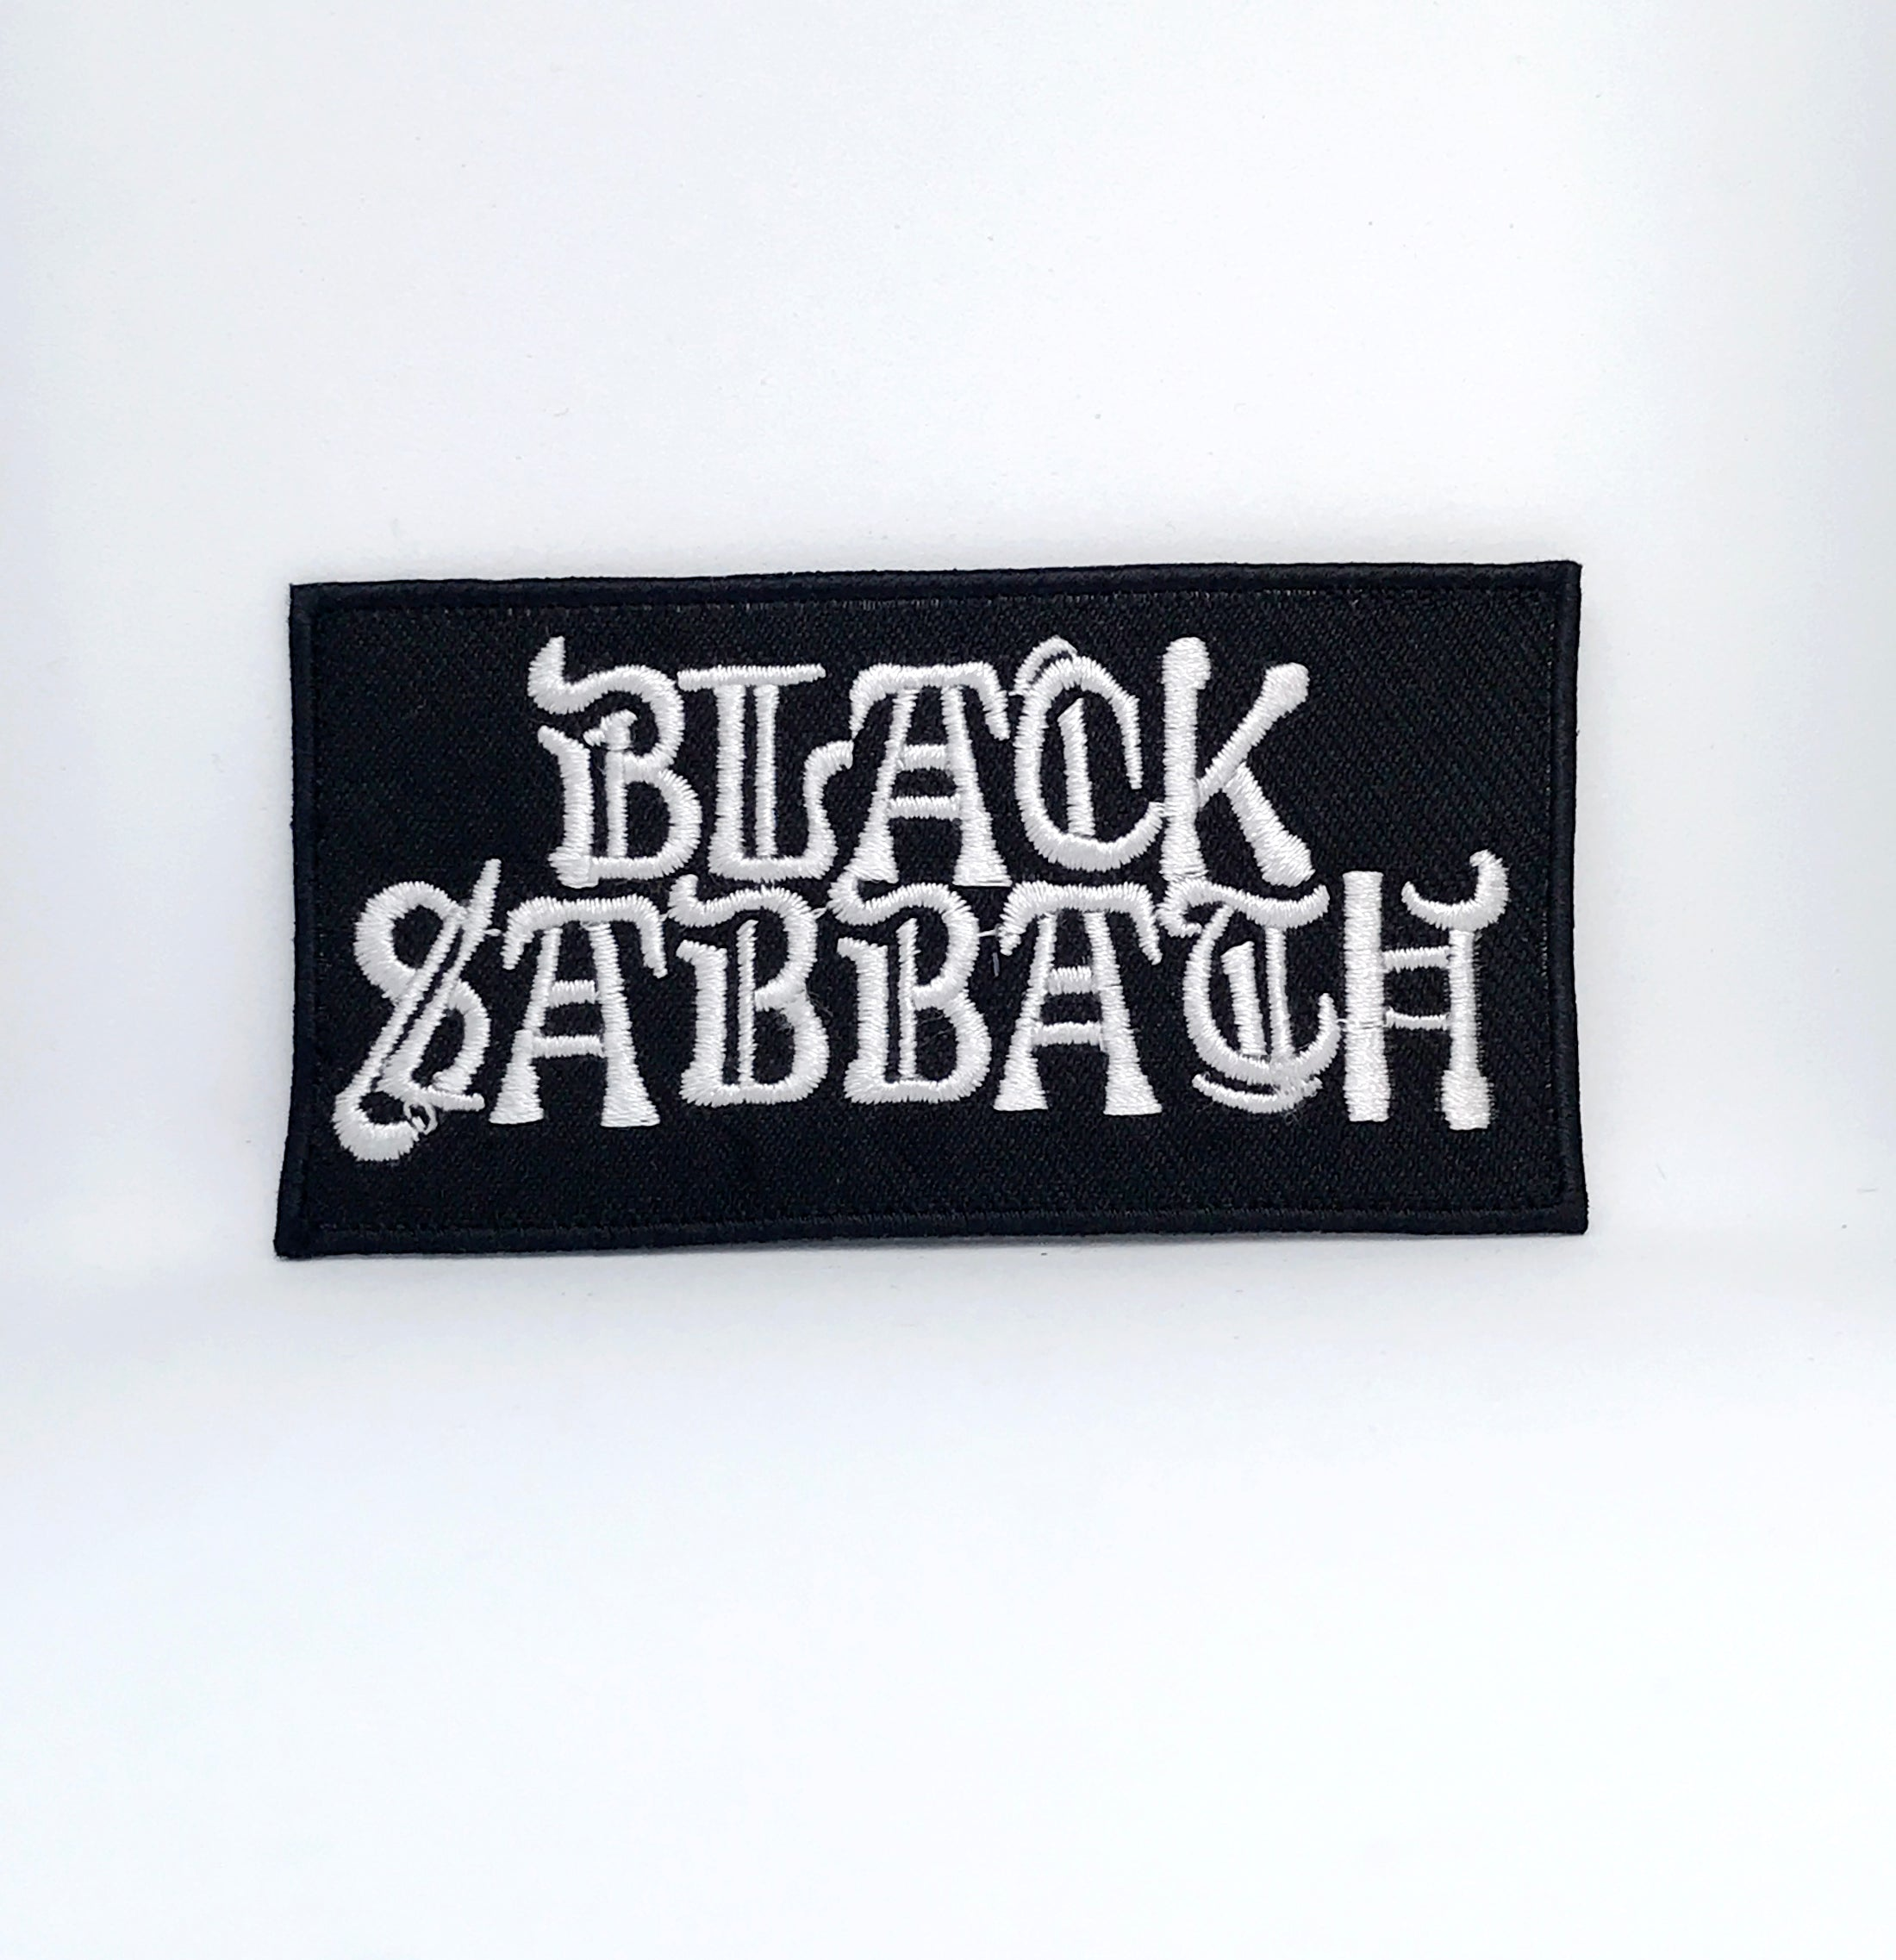 BLACK SABBATH Music Band Iron Sew On Embroidered Patch